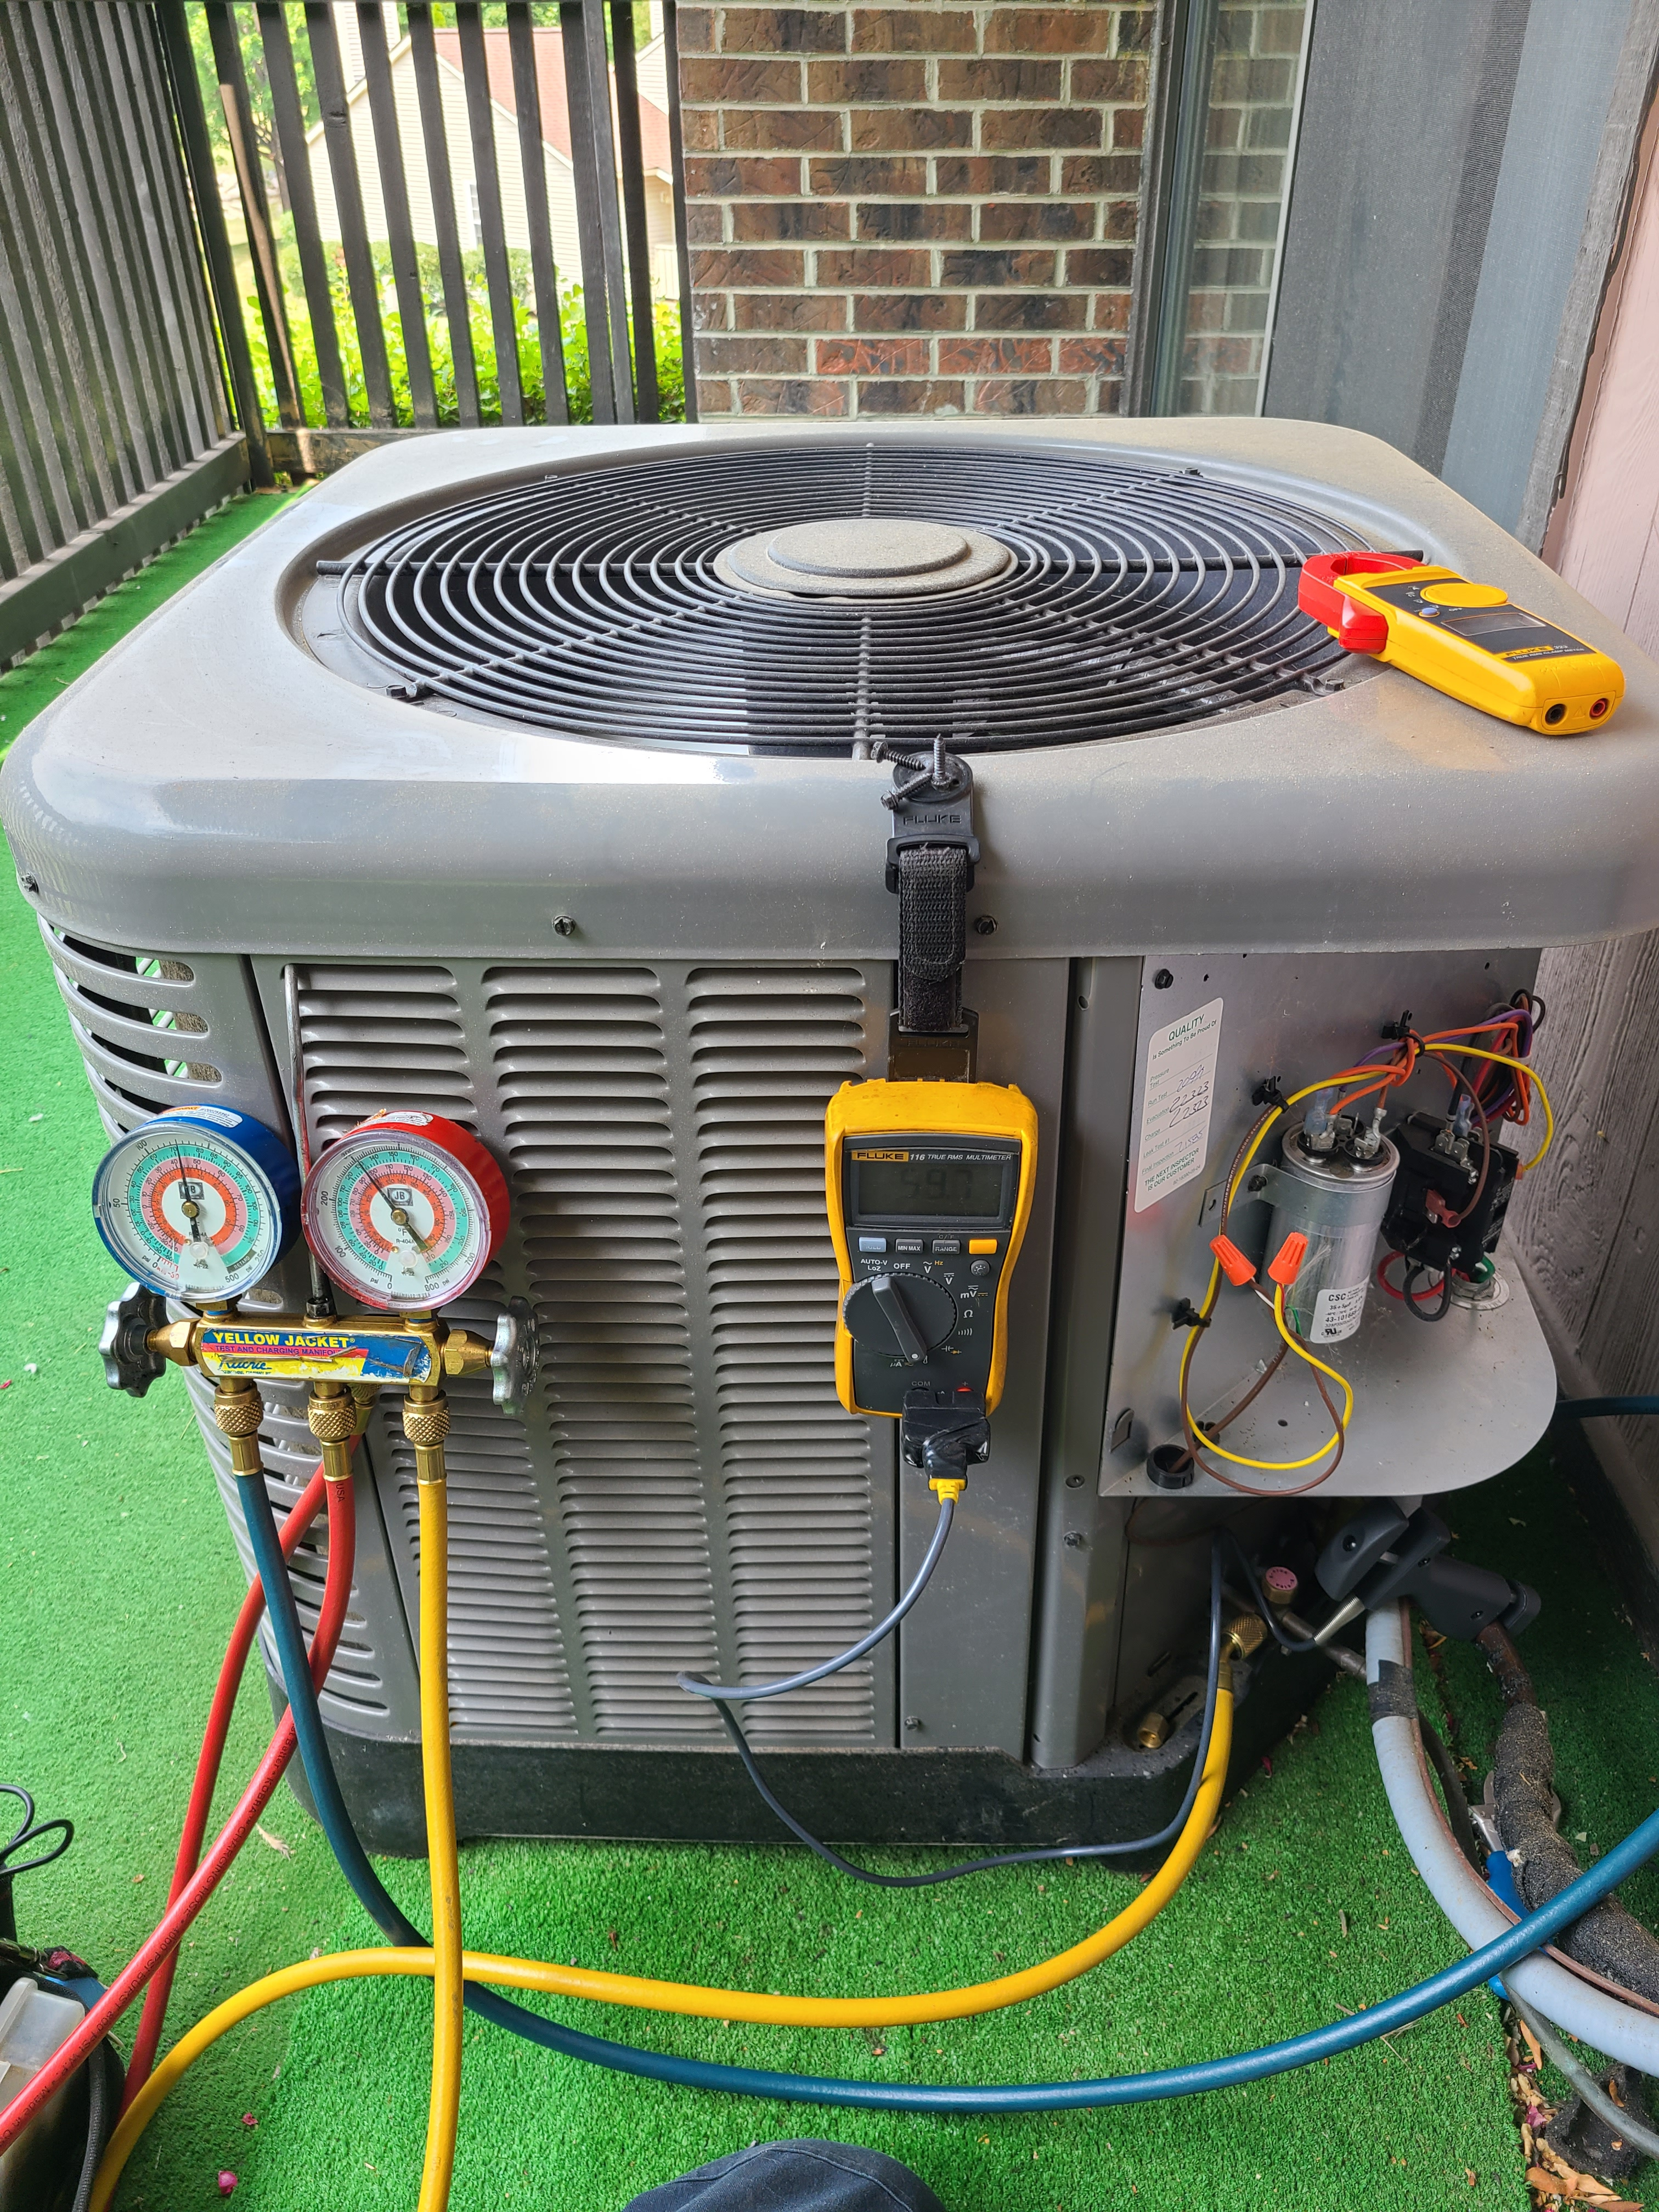 Ruud ac summer tune up and maintenance. System cleaned and checked and ready for summer.